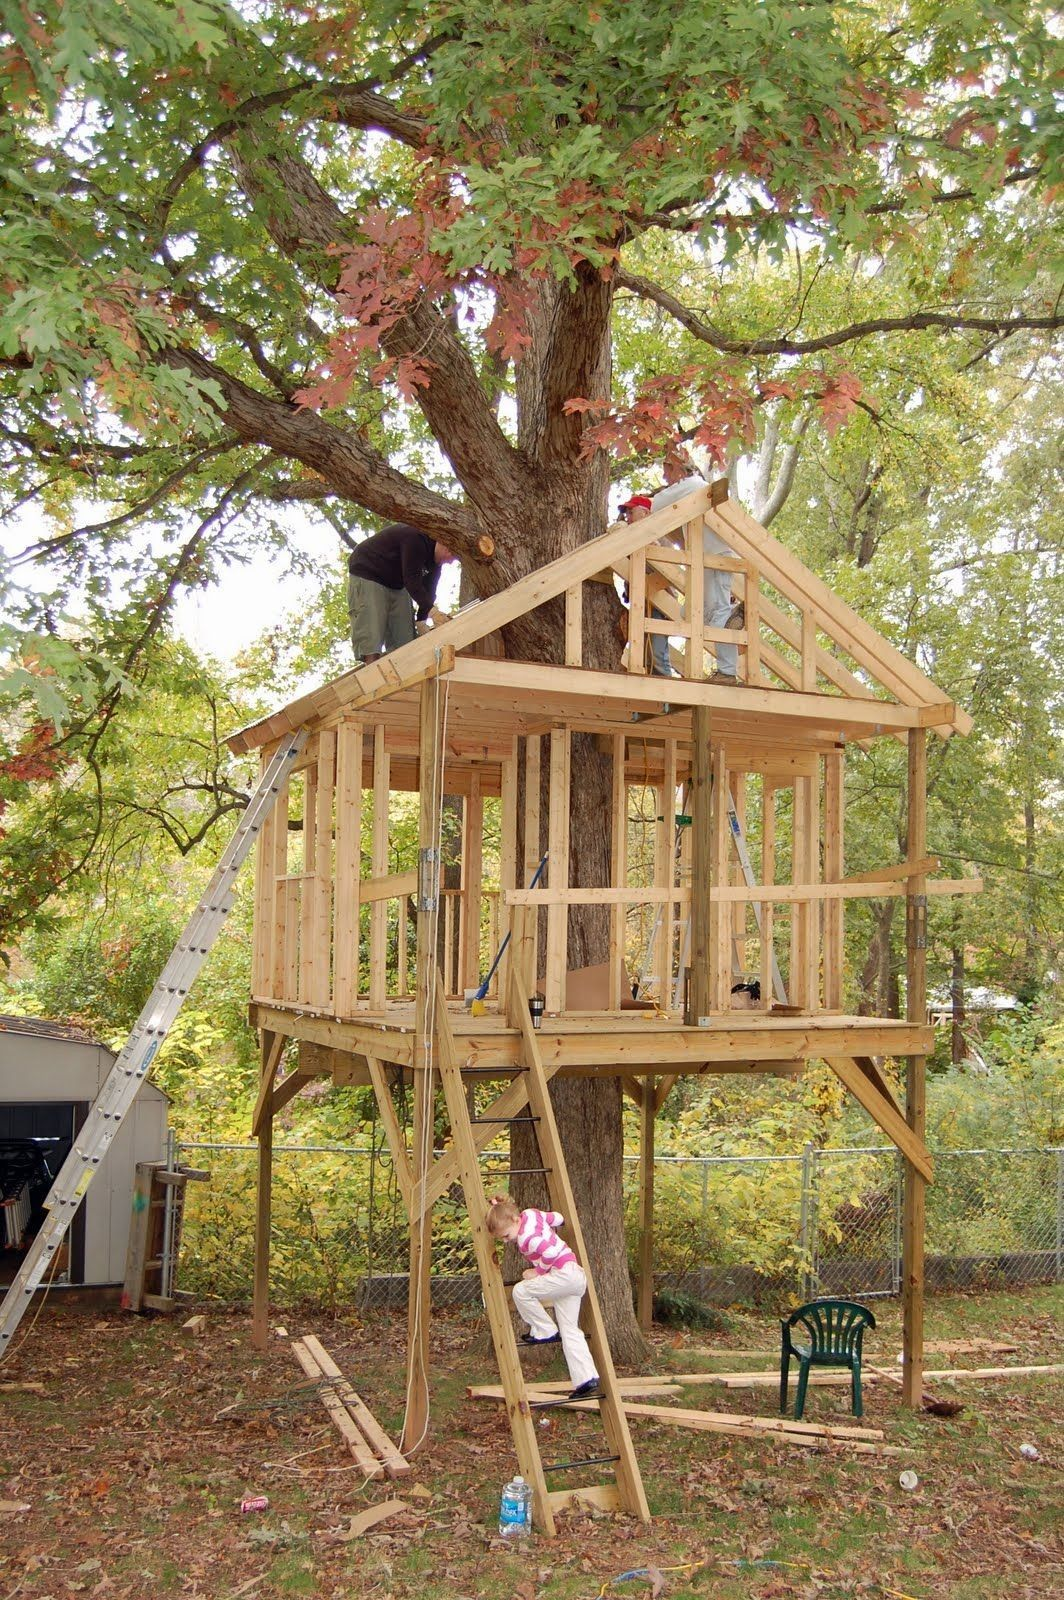 10 Backyard Treehouse Ideas Most Of The Engaging As Well As Lovely Too Tree House Diy Tree House Kids Simple Tree House Treehouse ideas for backyard